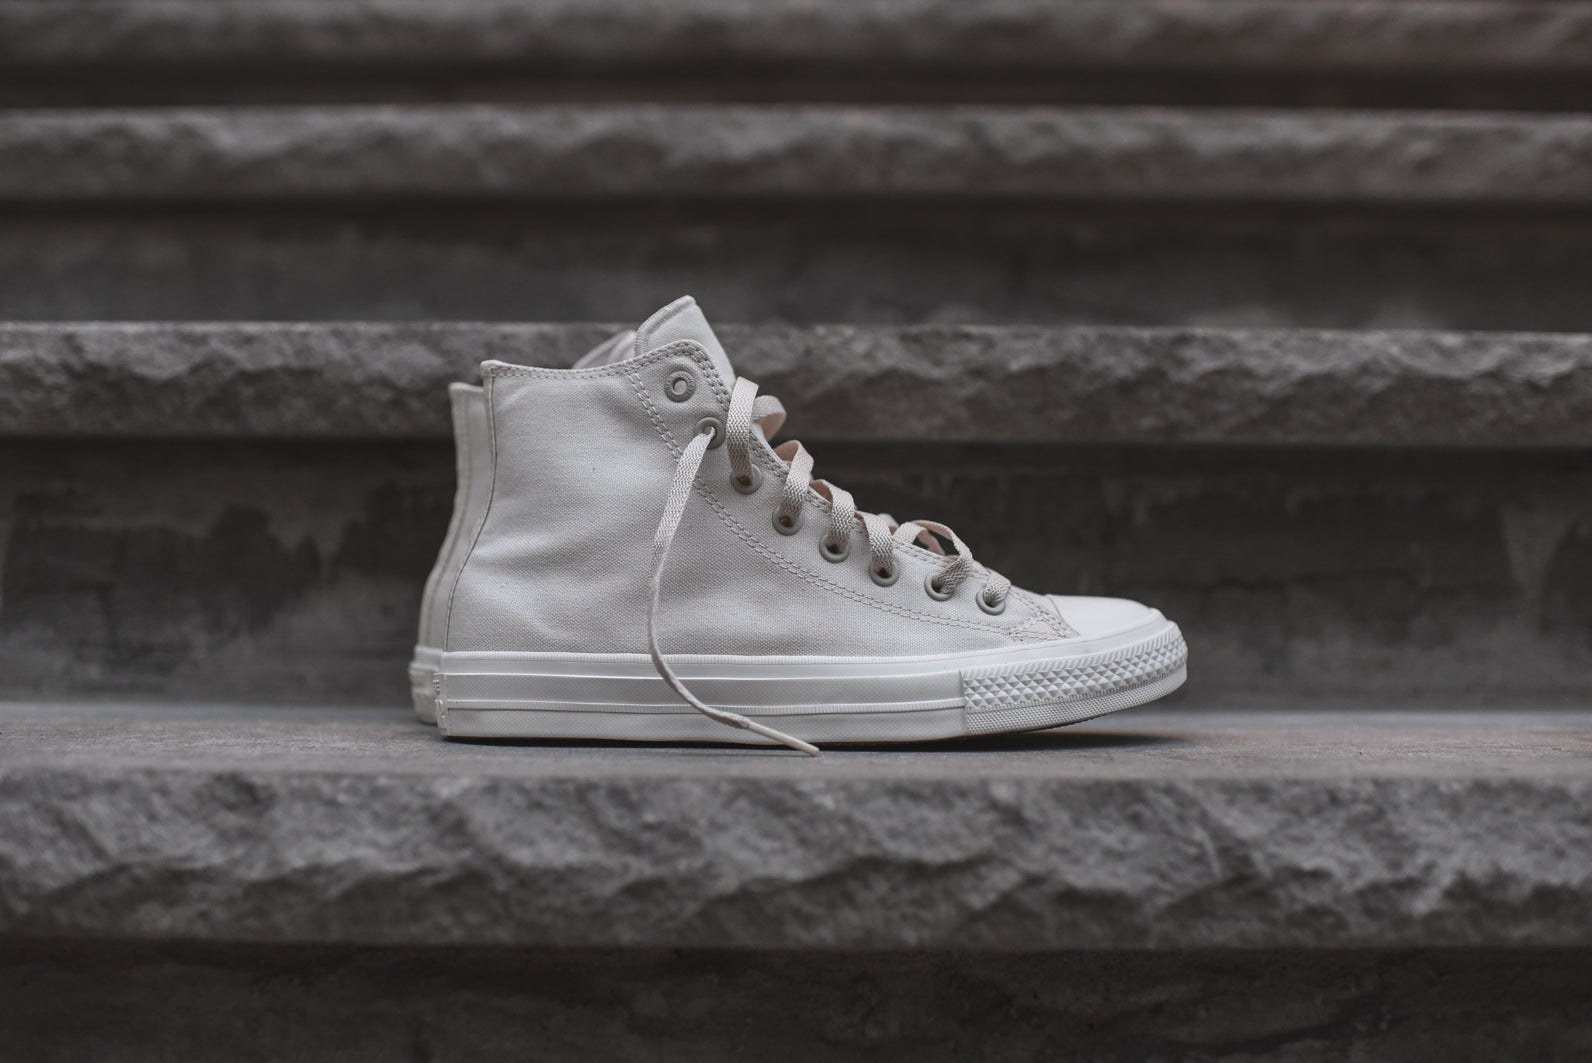 eb57743b9af6 Chuck 2 Parchment- White or cream Laces    streetwear